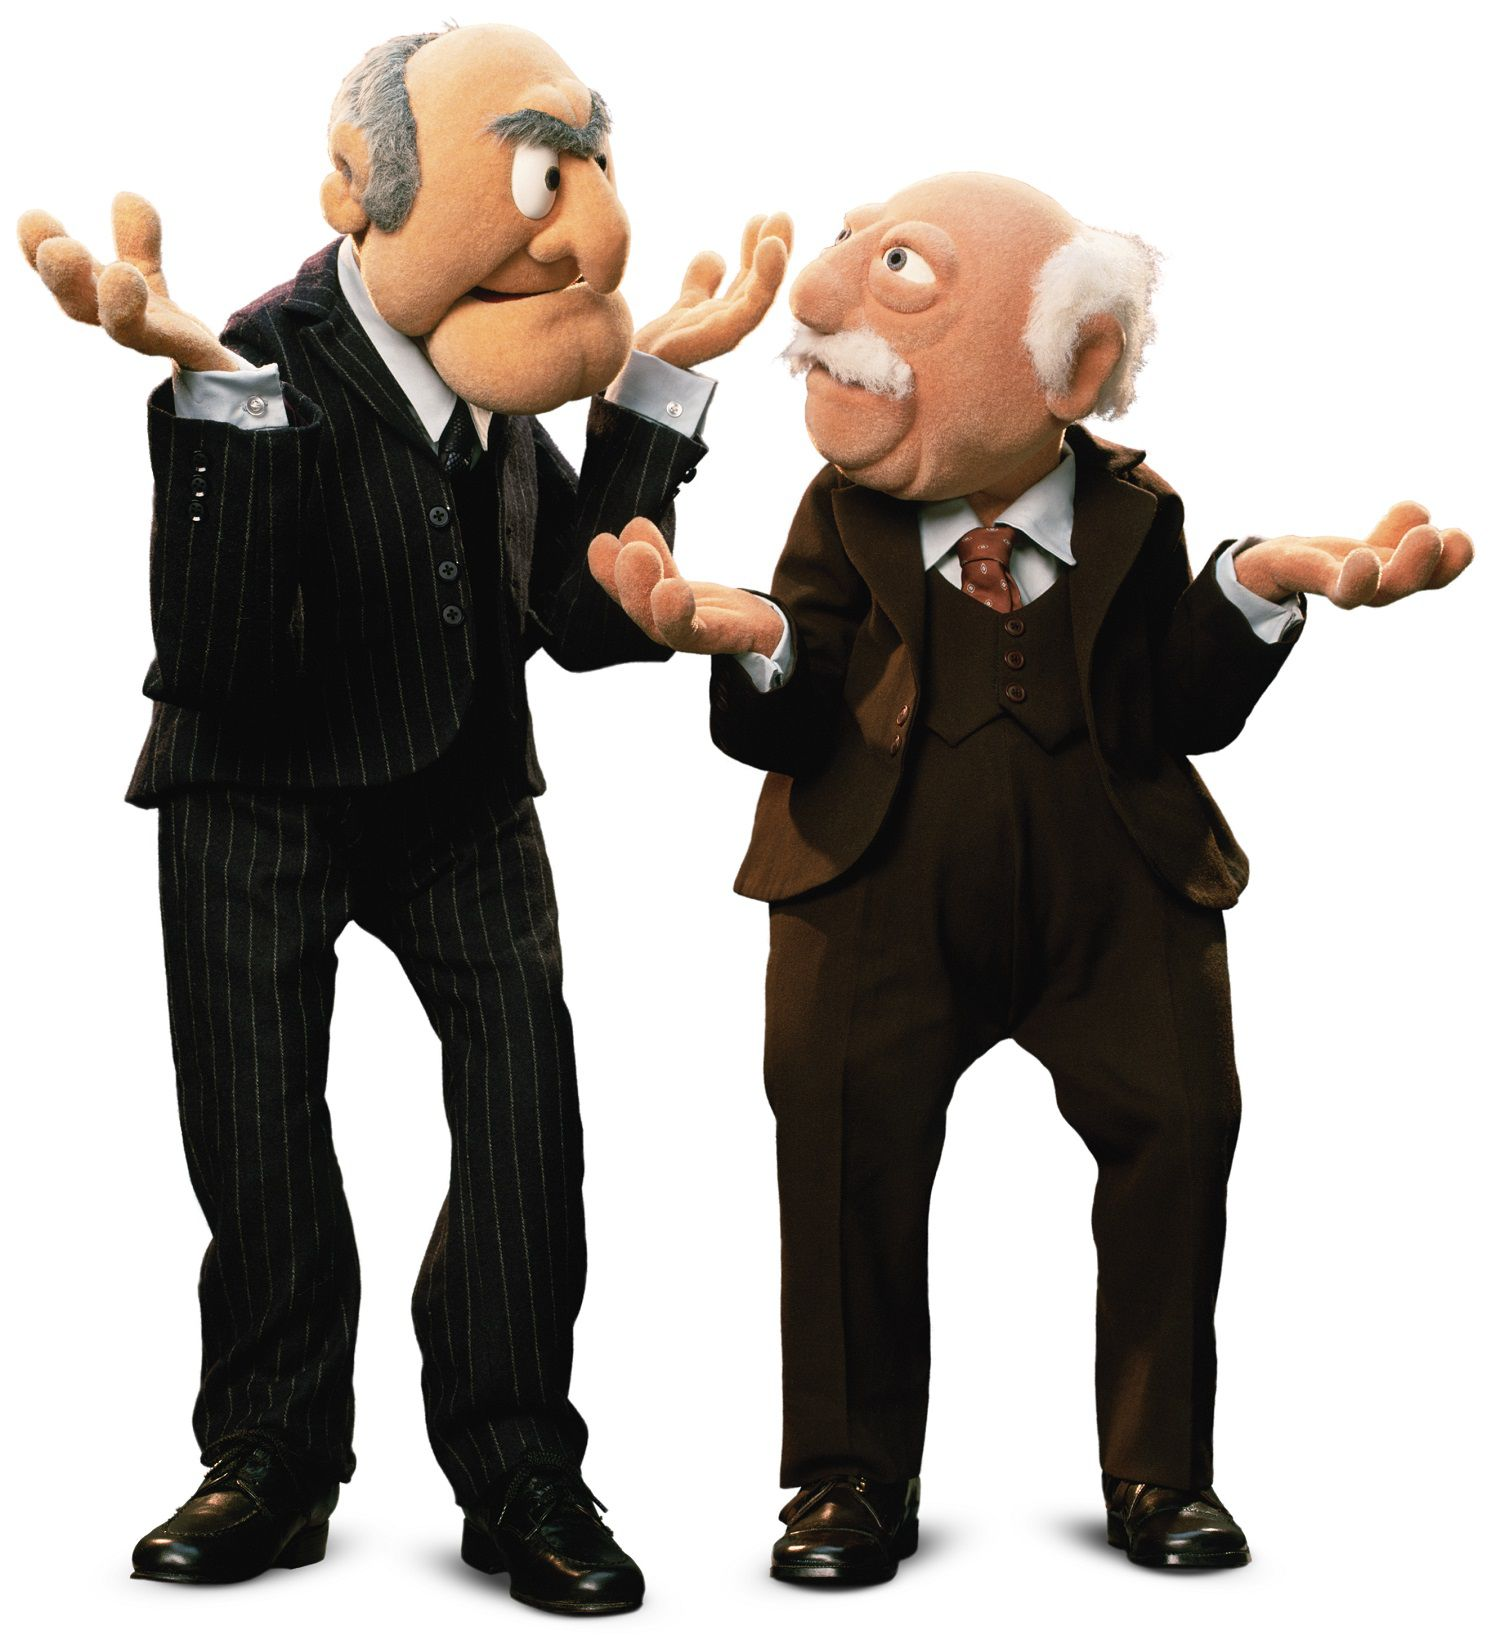 Muppets - Statler and Waldorf old guys